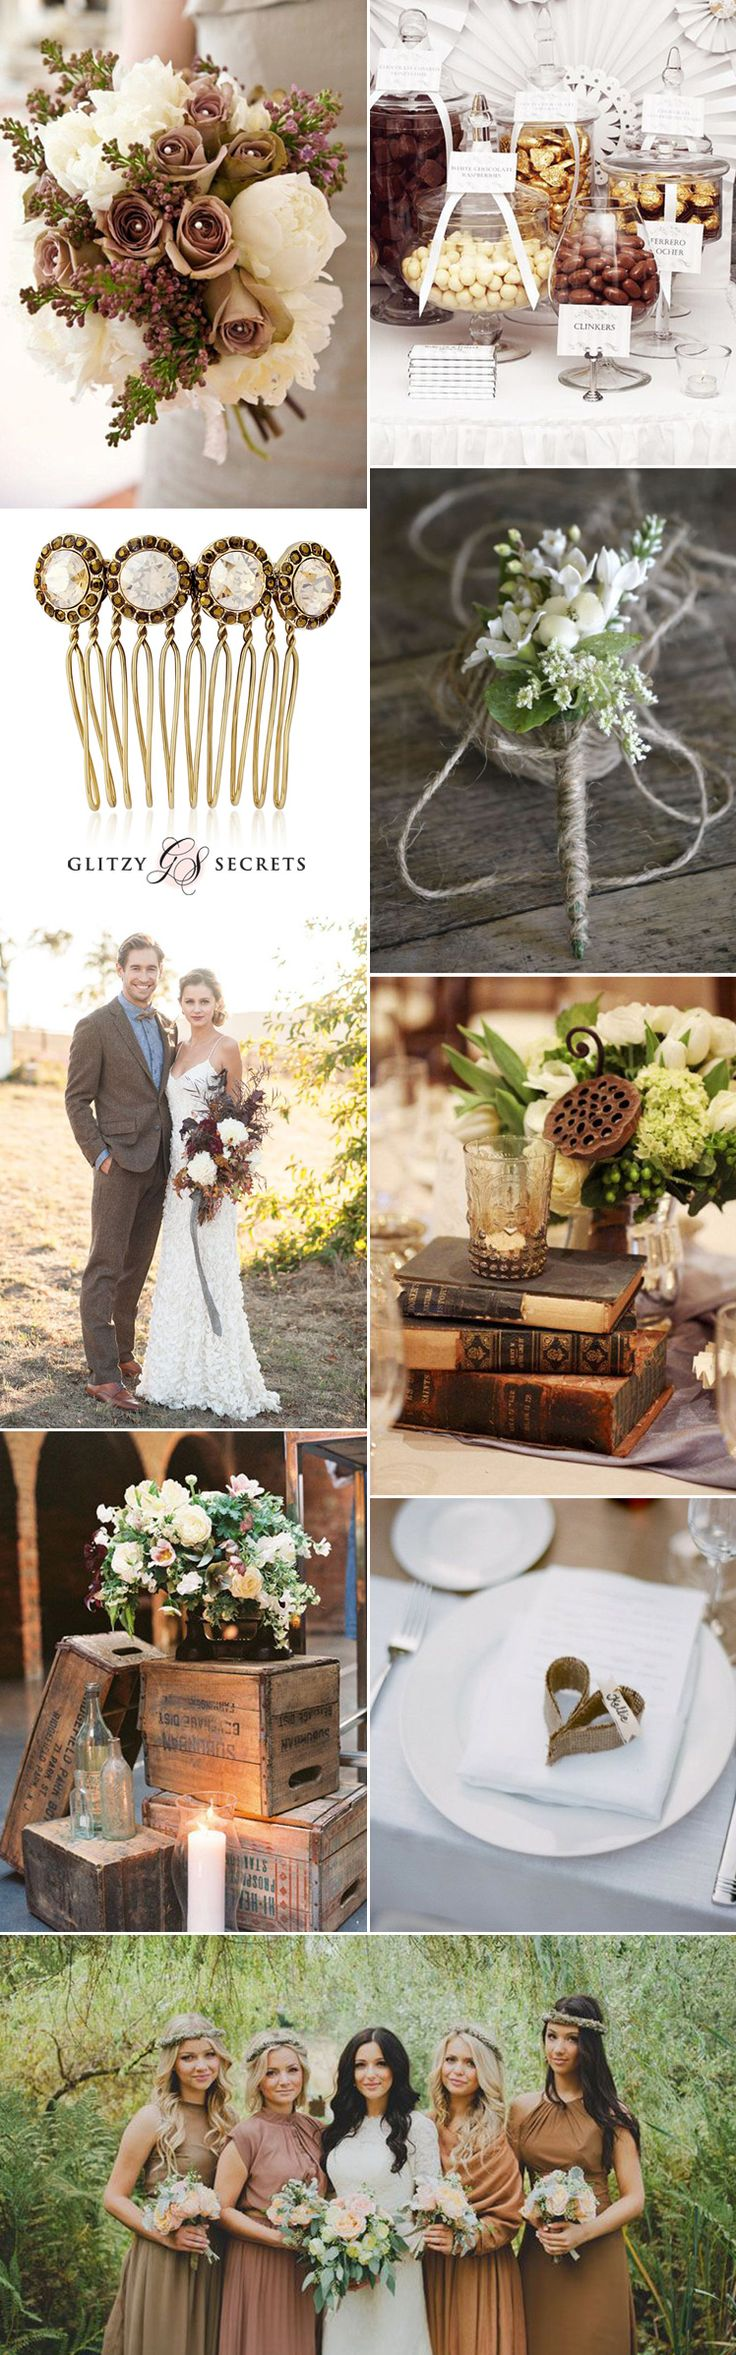 Gorgeous coffee and creams make a wonderful wedding color theme. Explore stunning ideas for a dreamy wedding scheme from brown wedding shoes to pretty cream bouquets